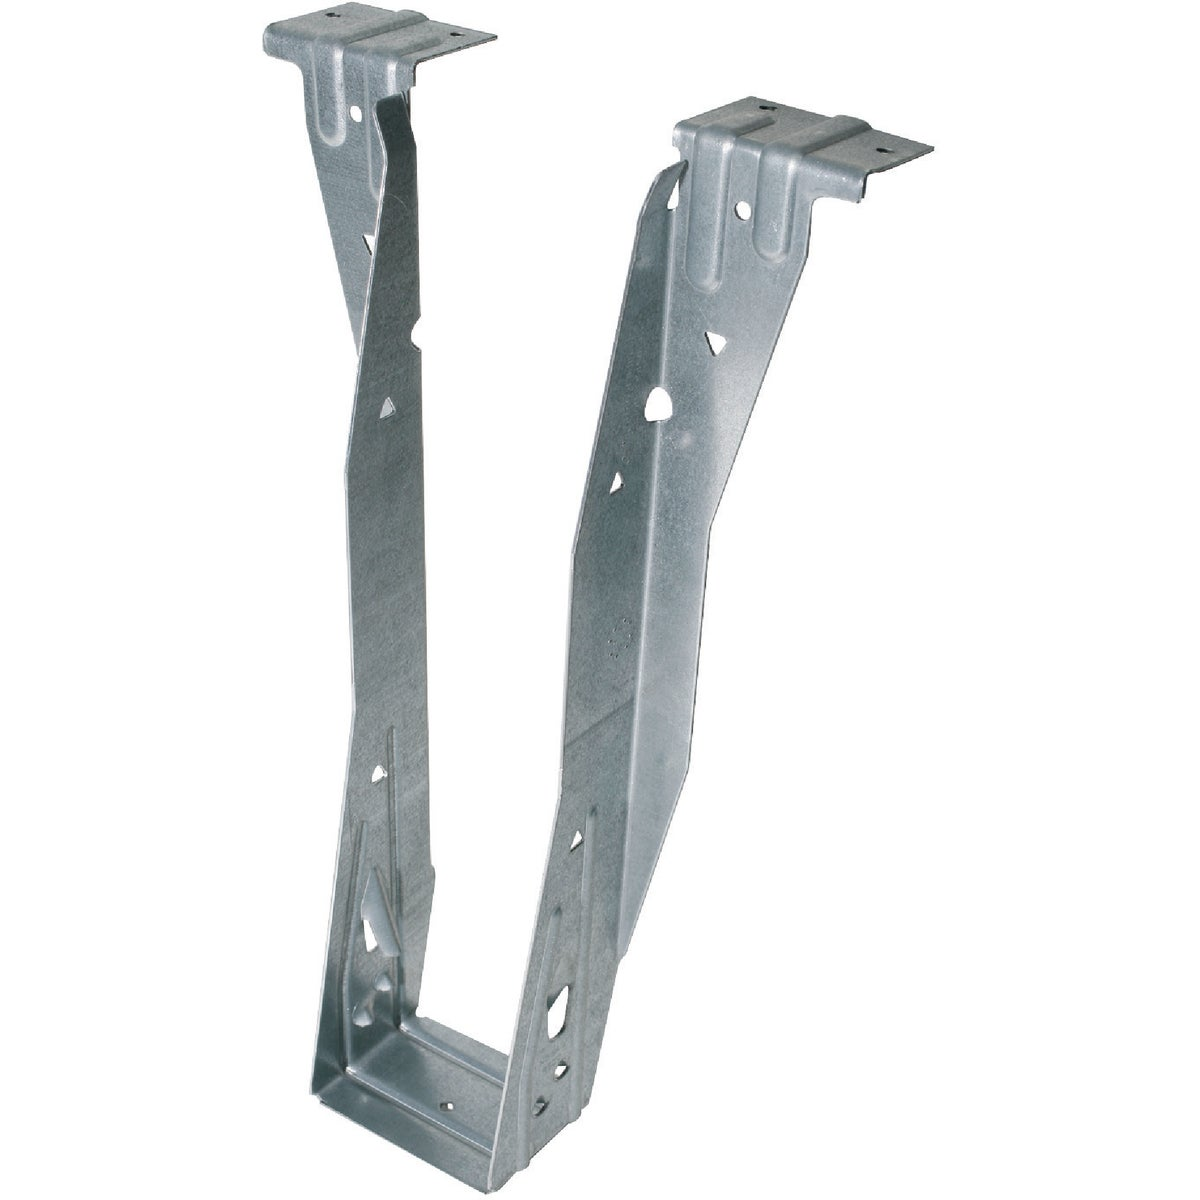 TOP FLANGE HANGER - ITS2.37/14 by Simpson Strong Tie